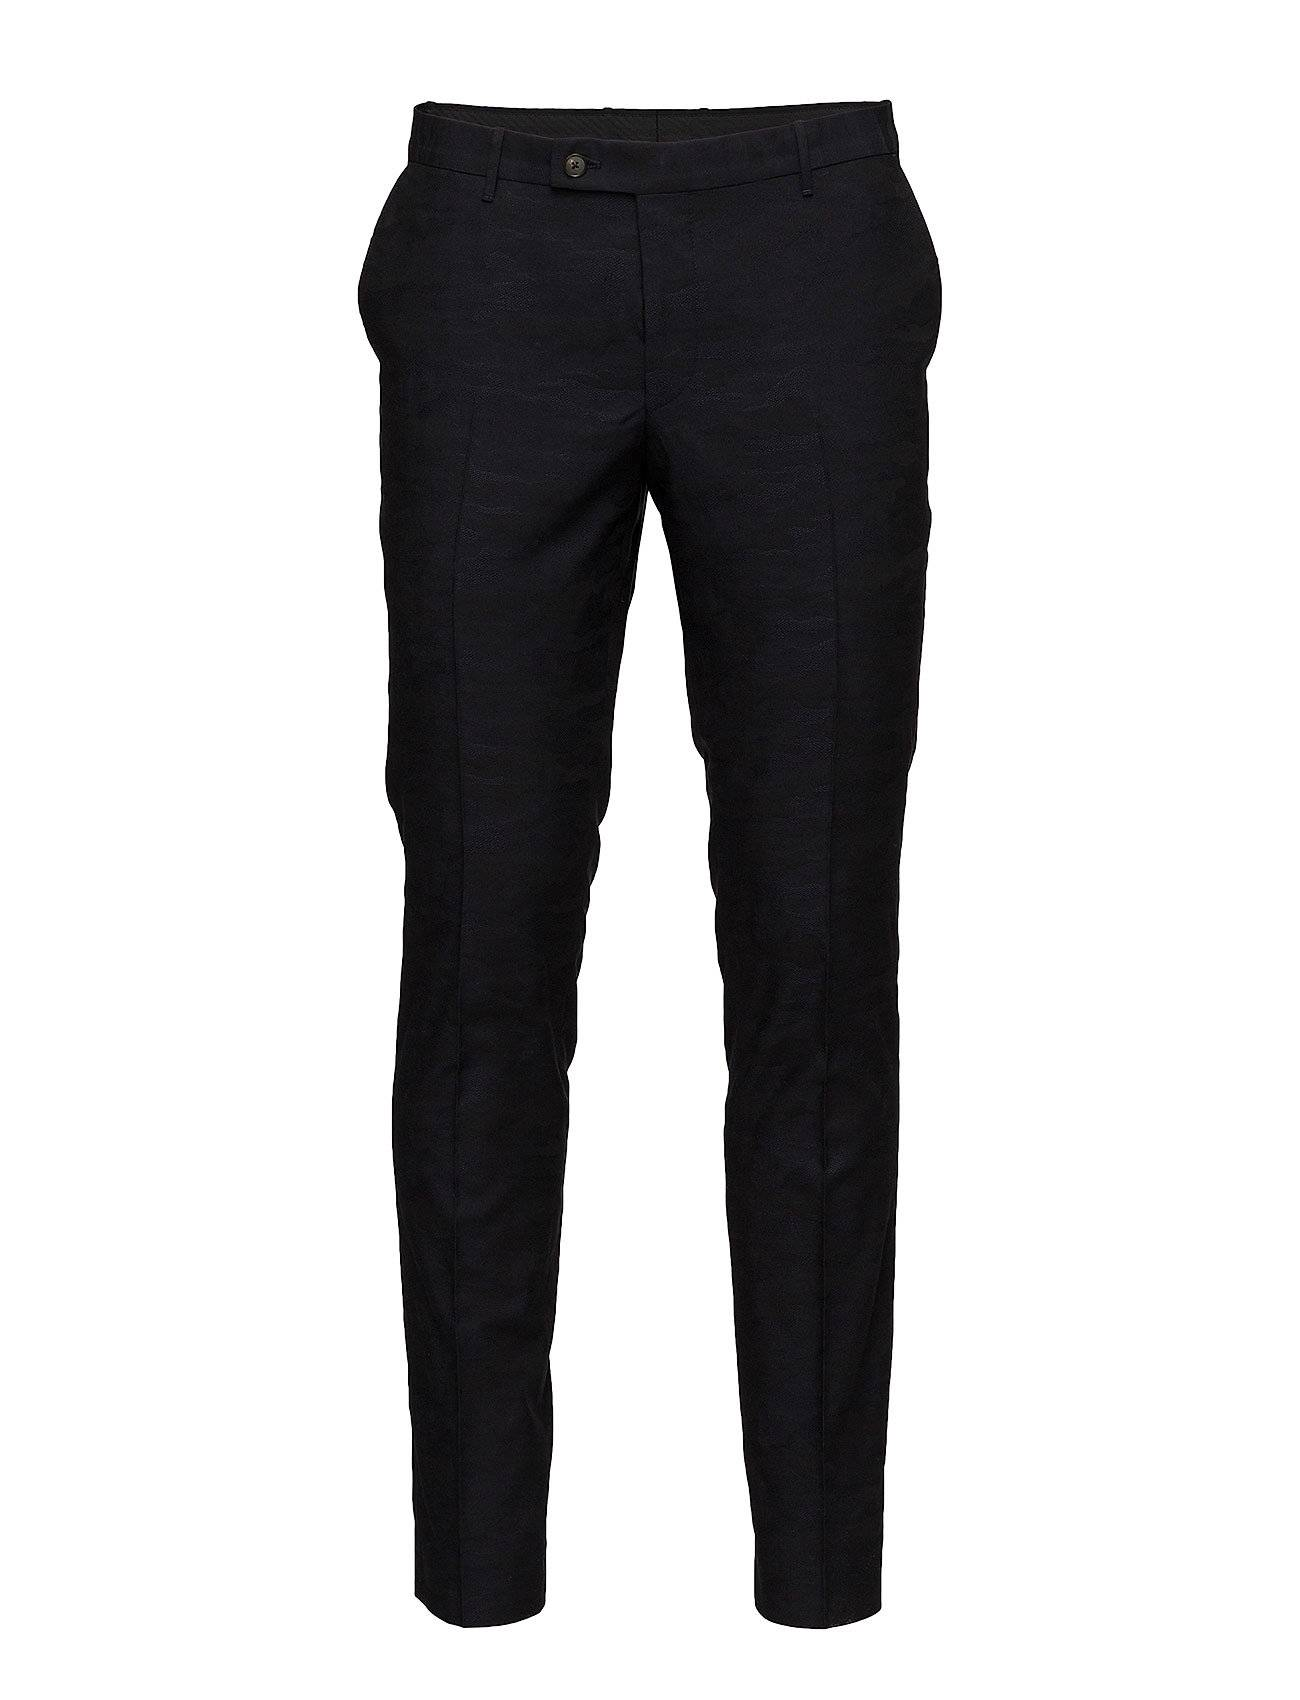 SPO 1578 - Bowie Trousers Normal